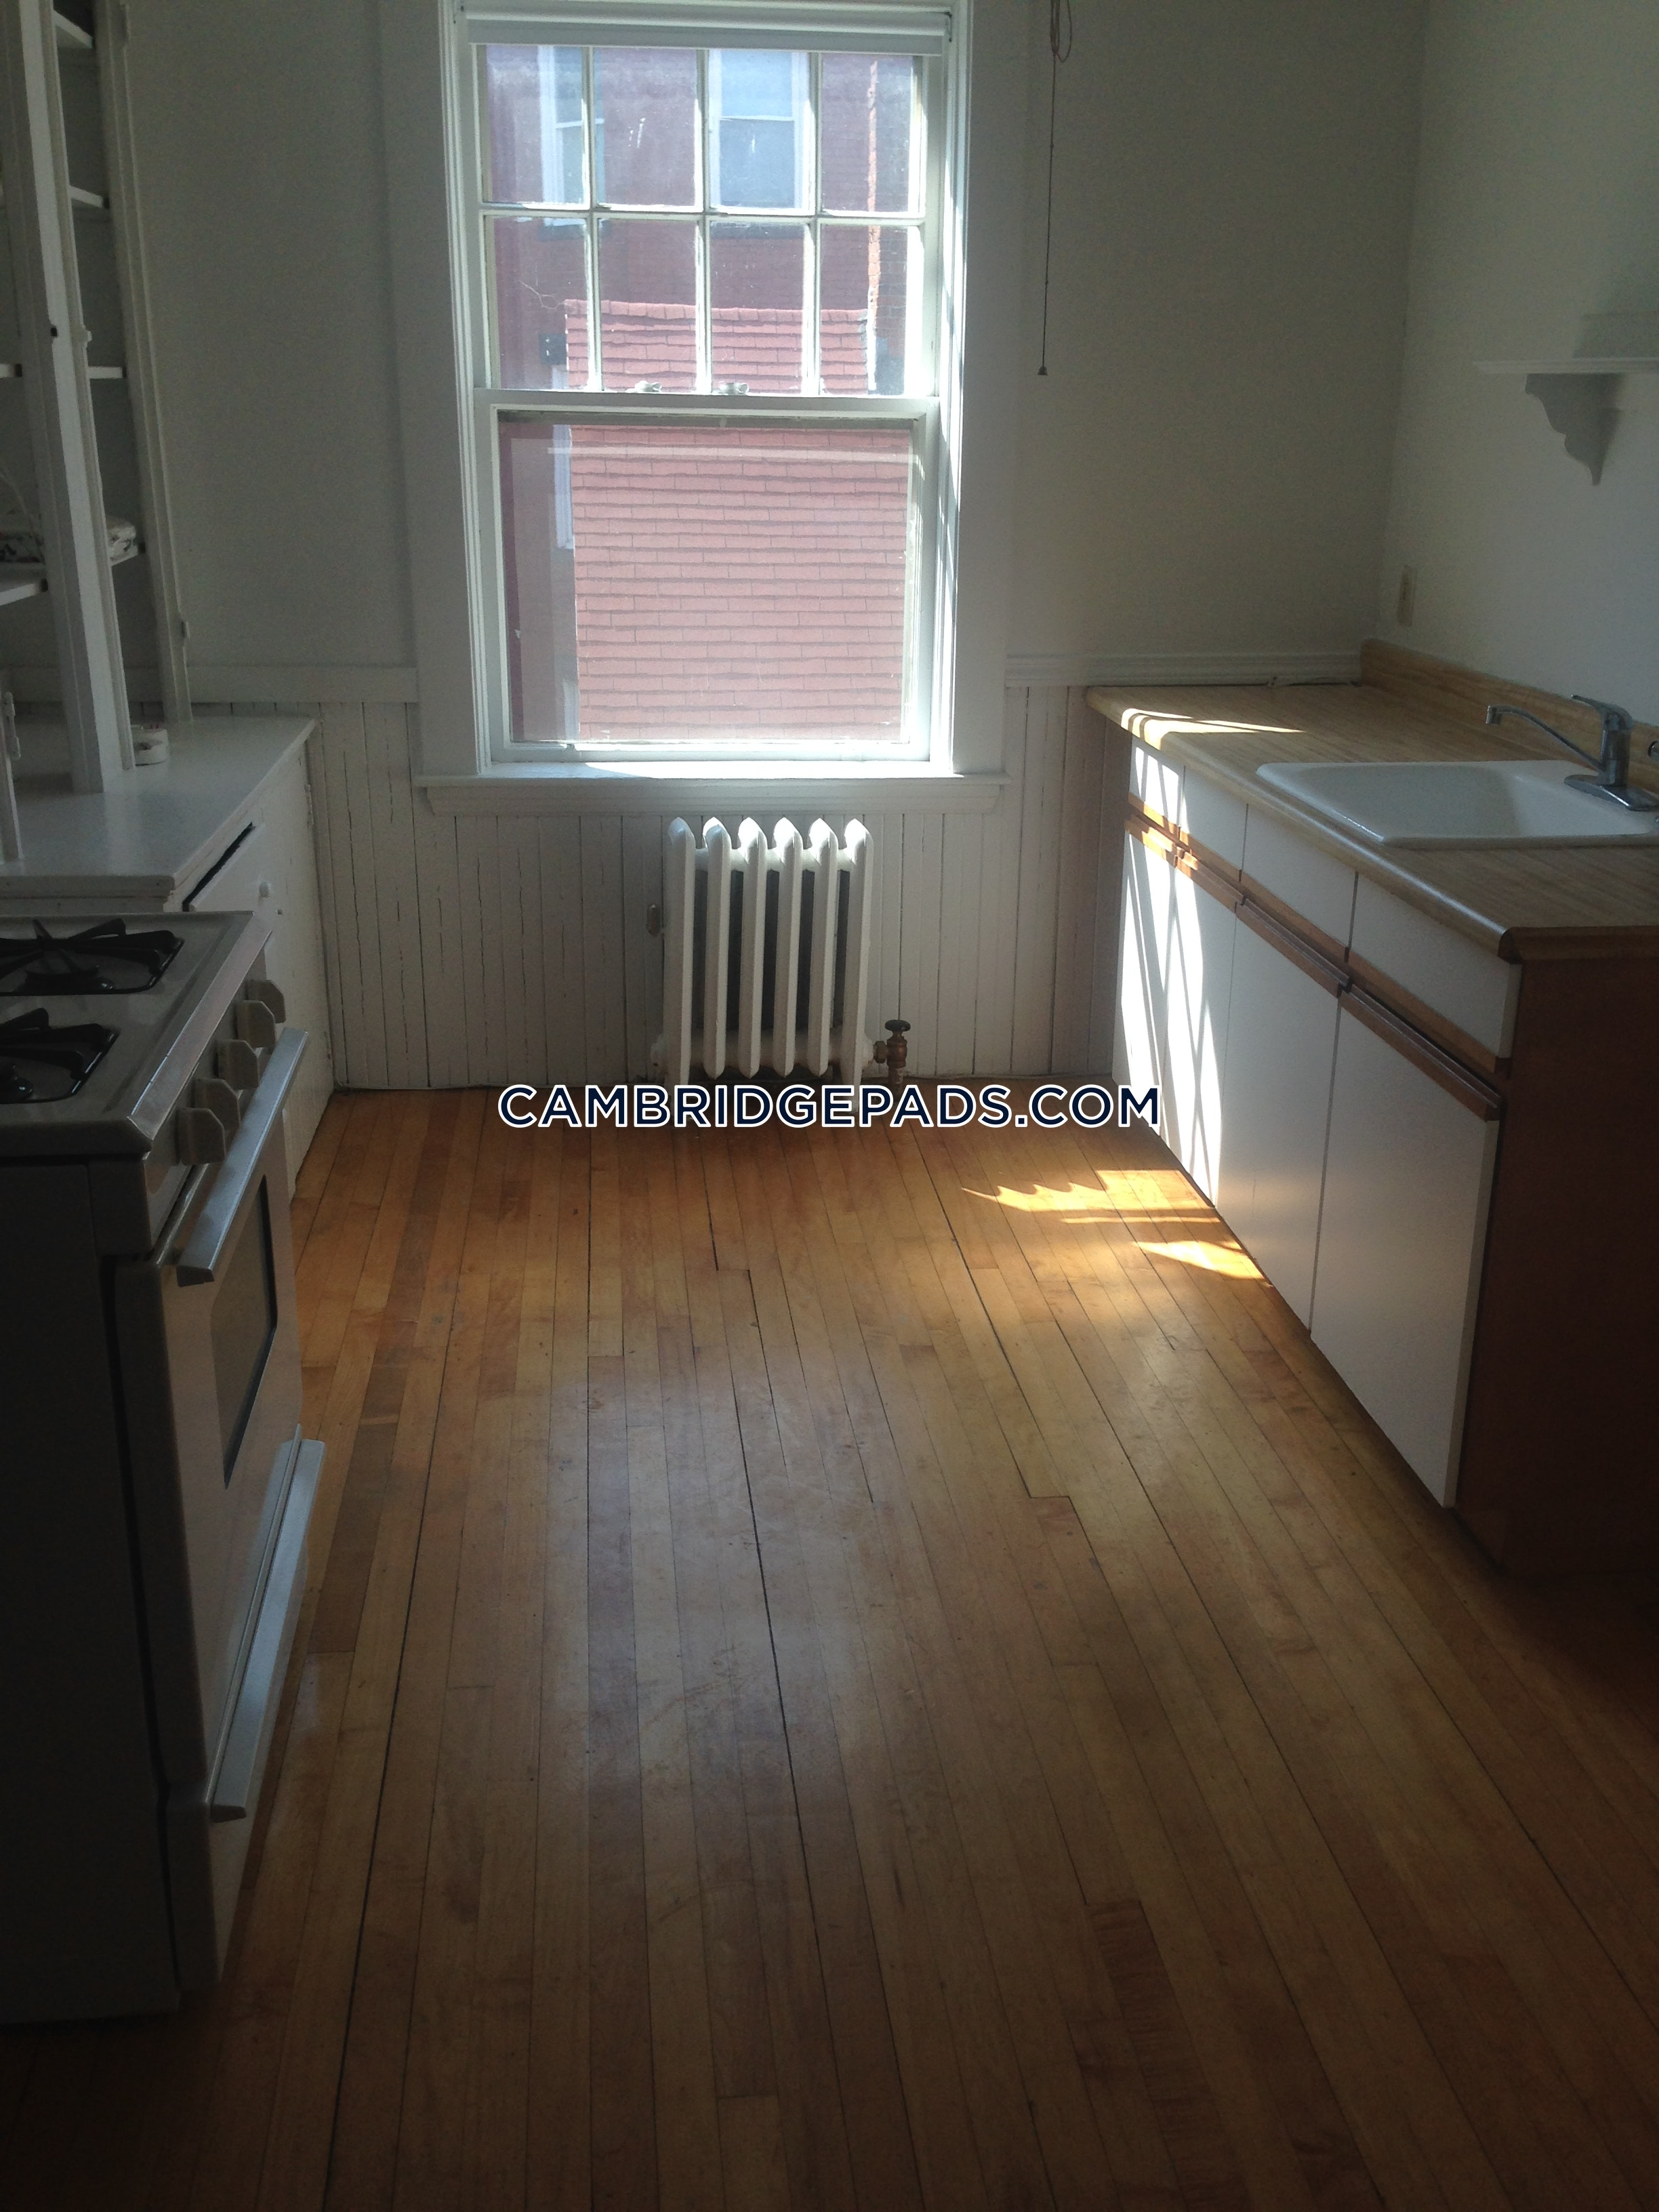 Cambridge - $3,200